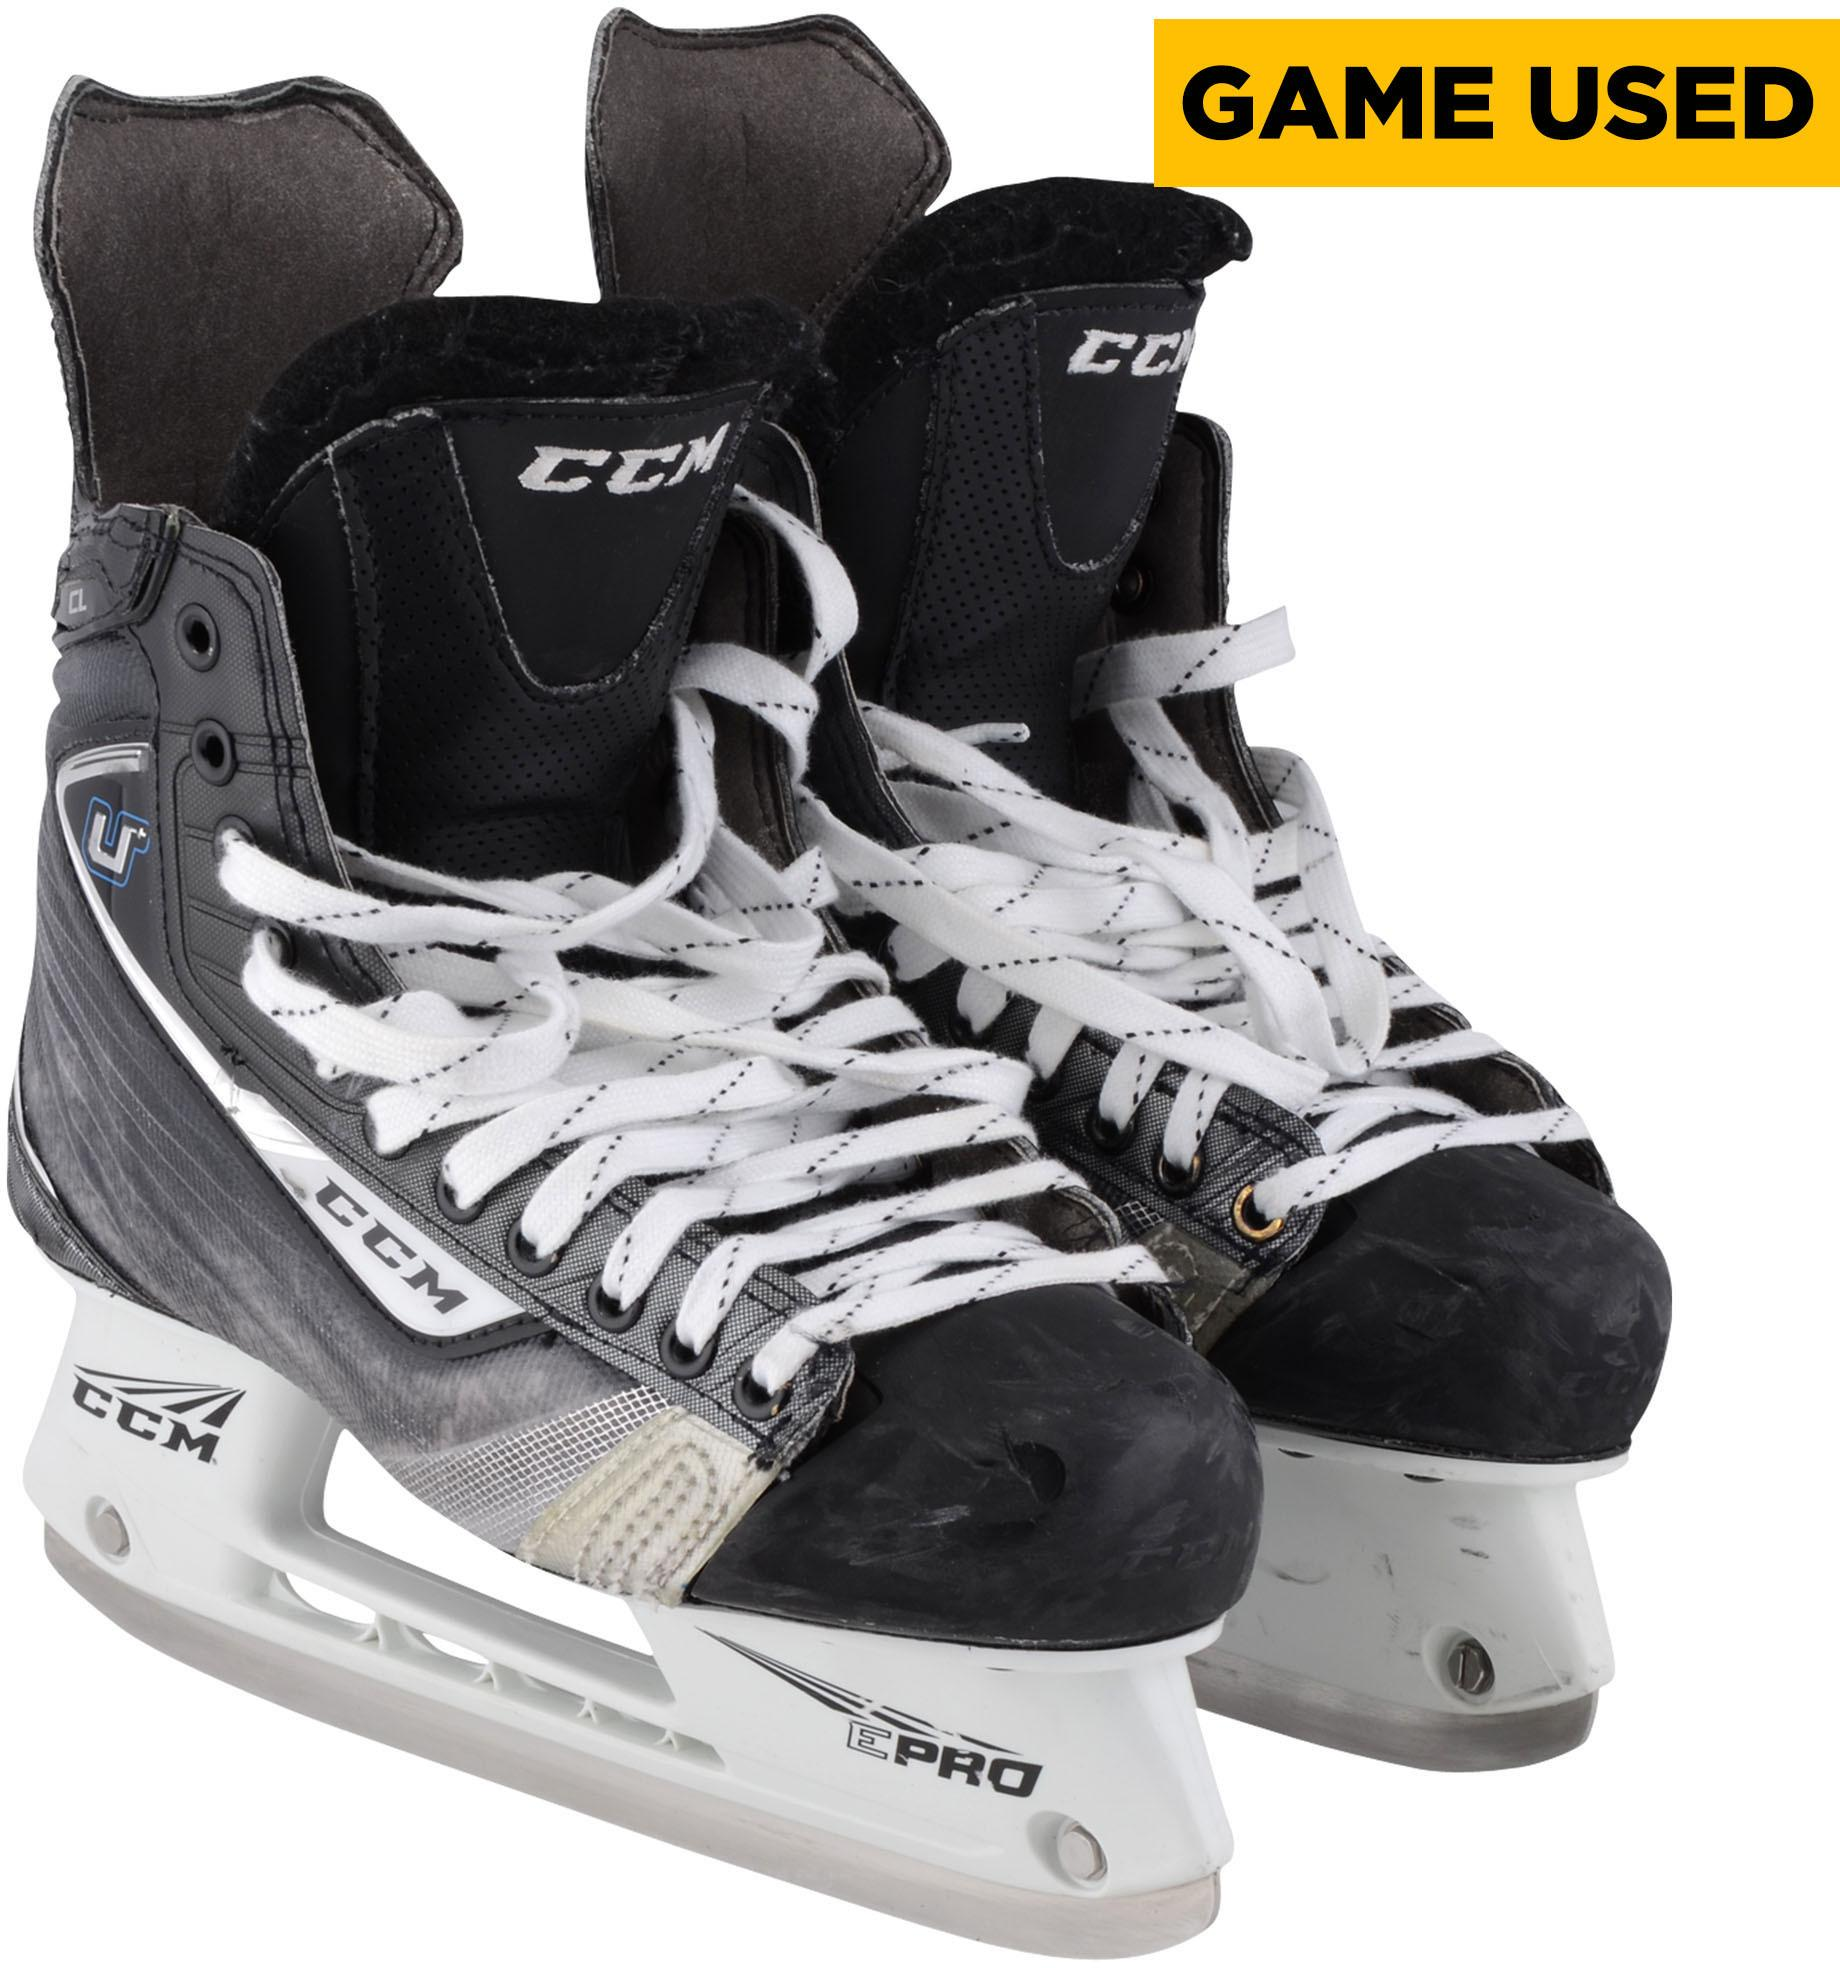 Joel Ward San Jose Sharks Game-Used Black CCM Skates from the 2017-18 NHL Season Fanatics Authentic Certified by Fanatics Authentic